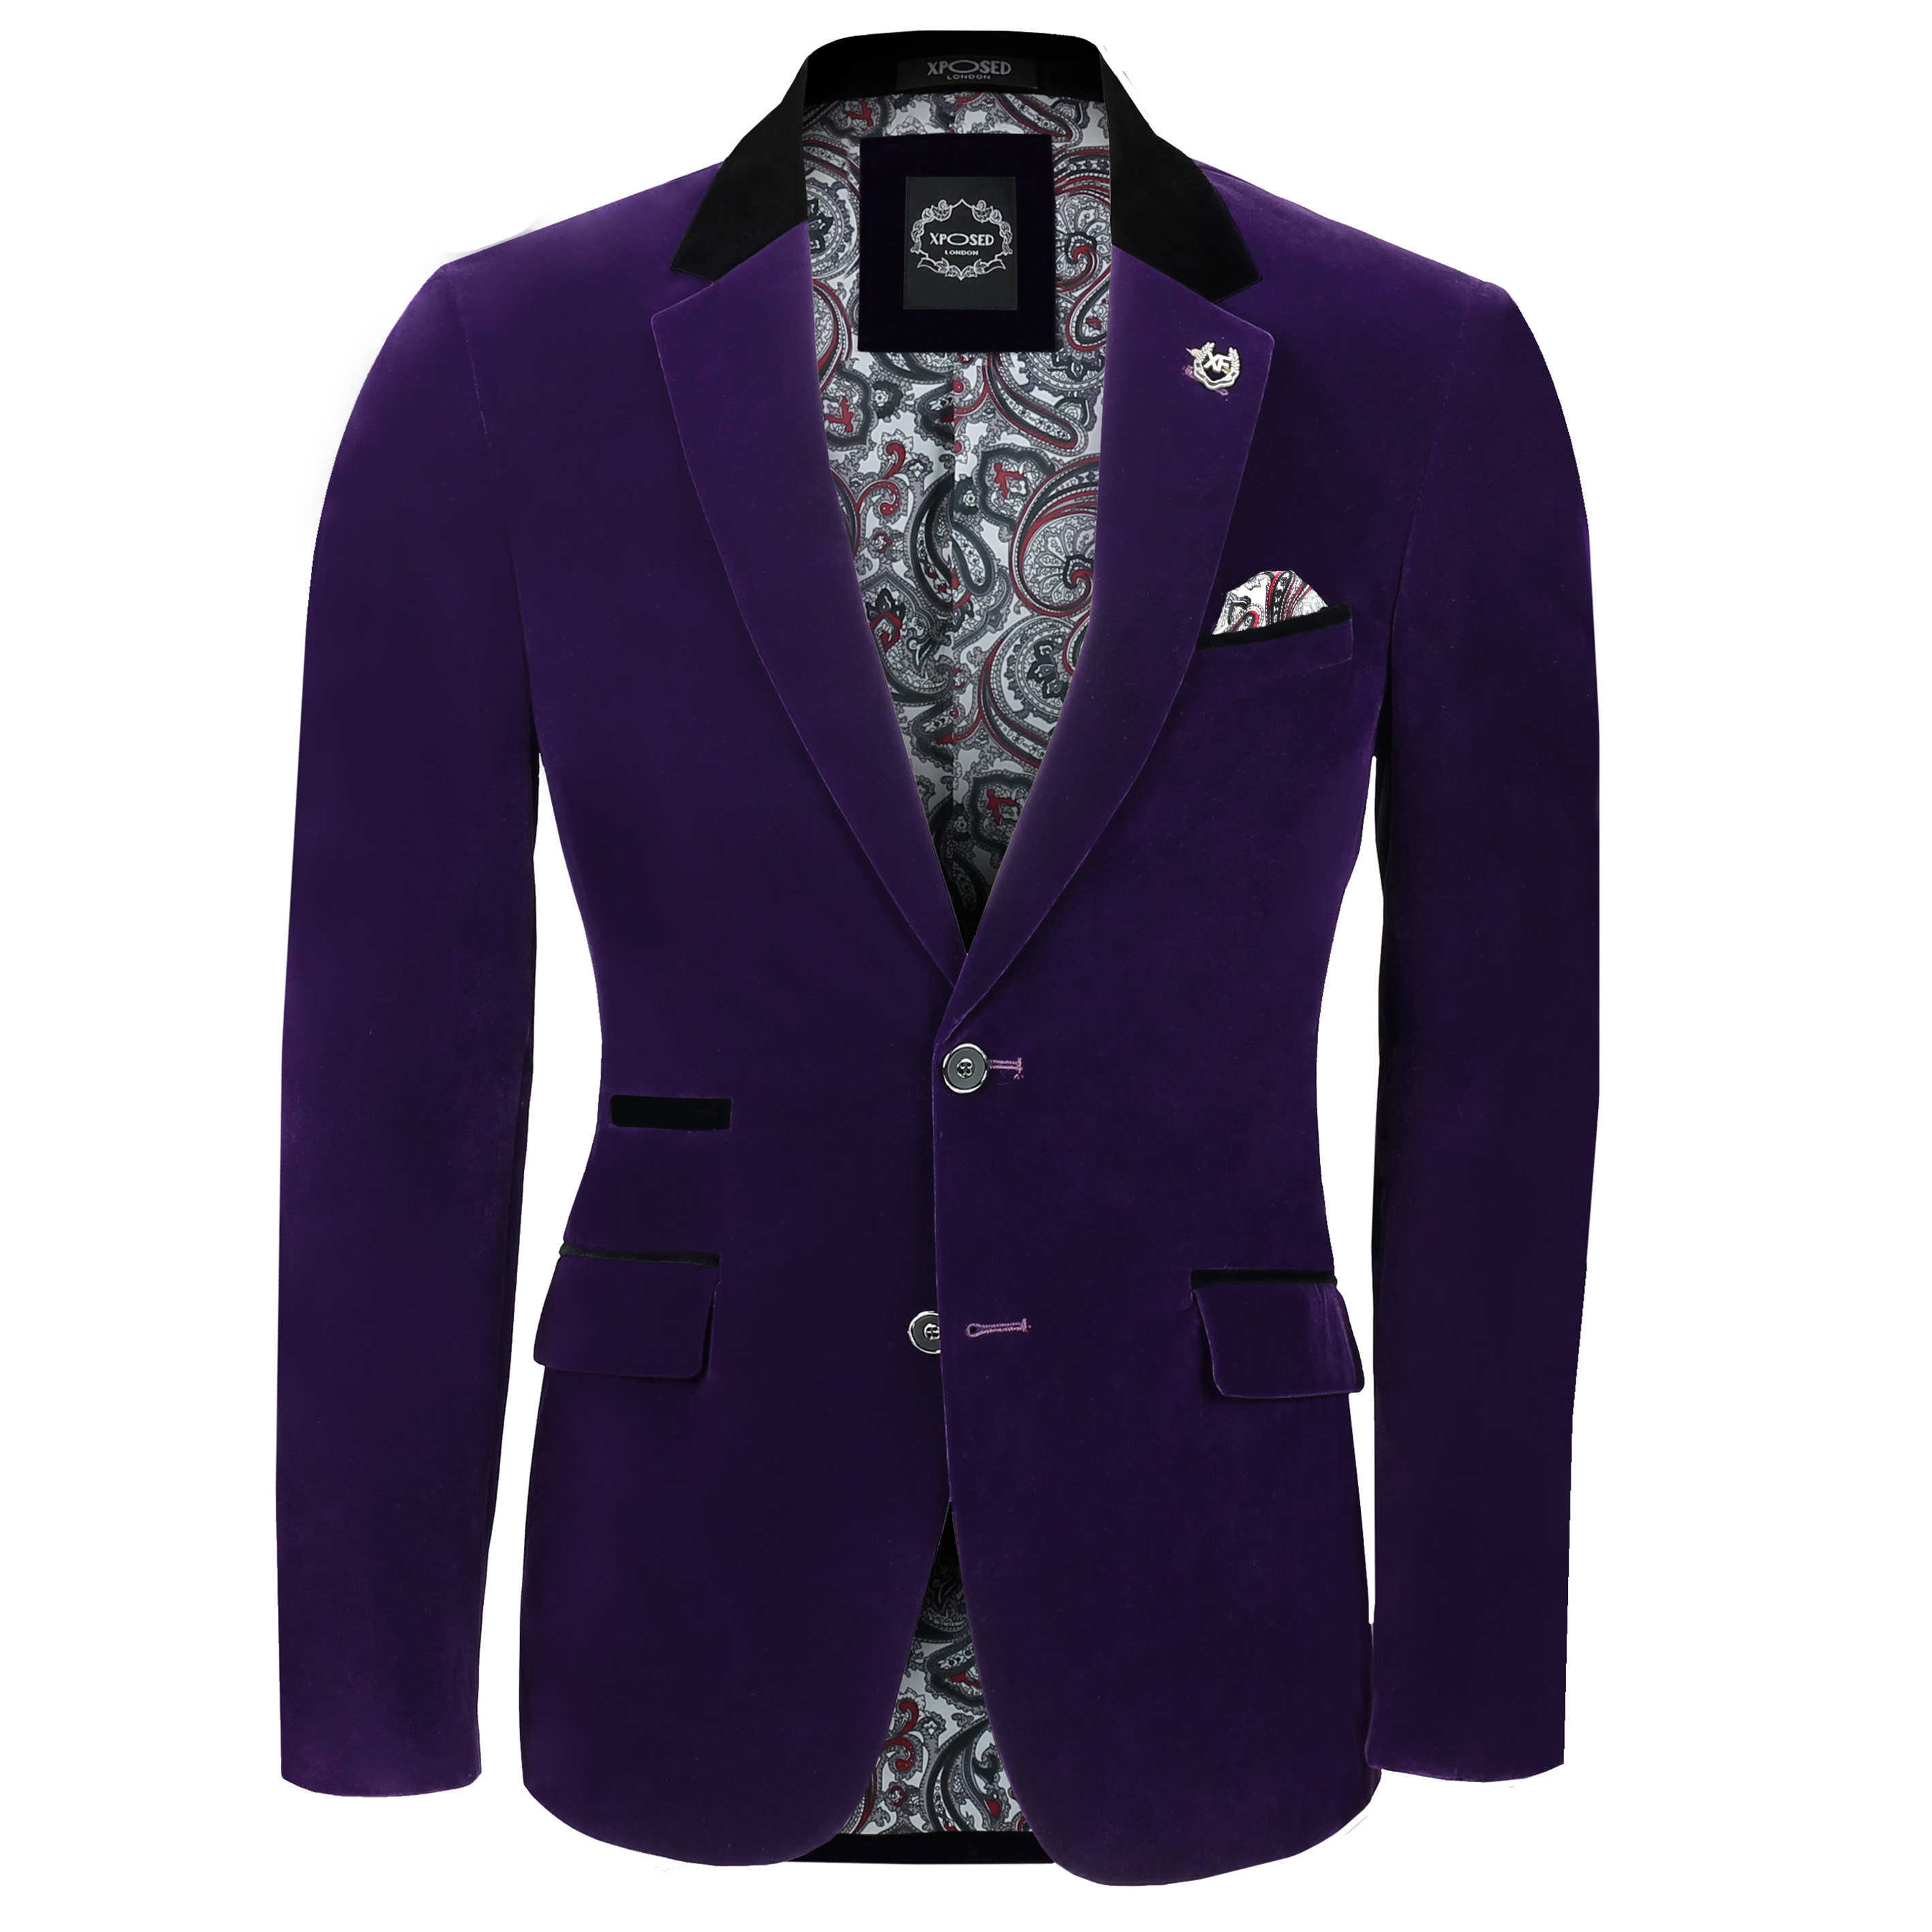 Sportcoats & Blazers: Free Shipping on orders over $45 at rutor-org.ga - Your Online Sportcoats & Blazers Store! Get 5% in rewards with Club O!